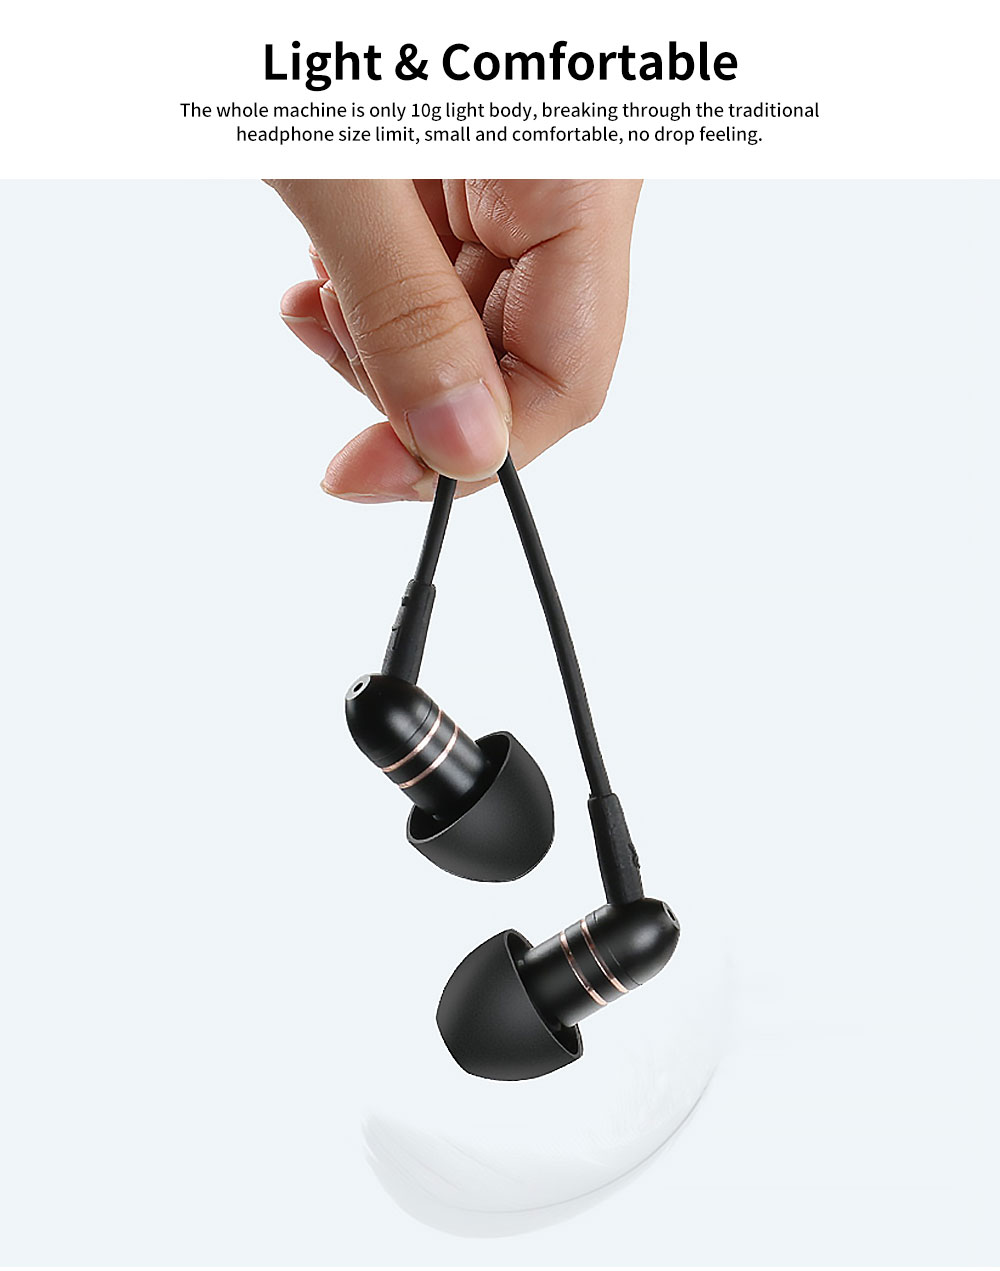 Subwoofer In-ear Headphones, High-quality Subwoofer Noise-reducing Earphone, Headphones for Notebook Wired Singing 3